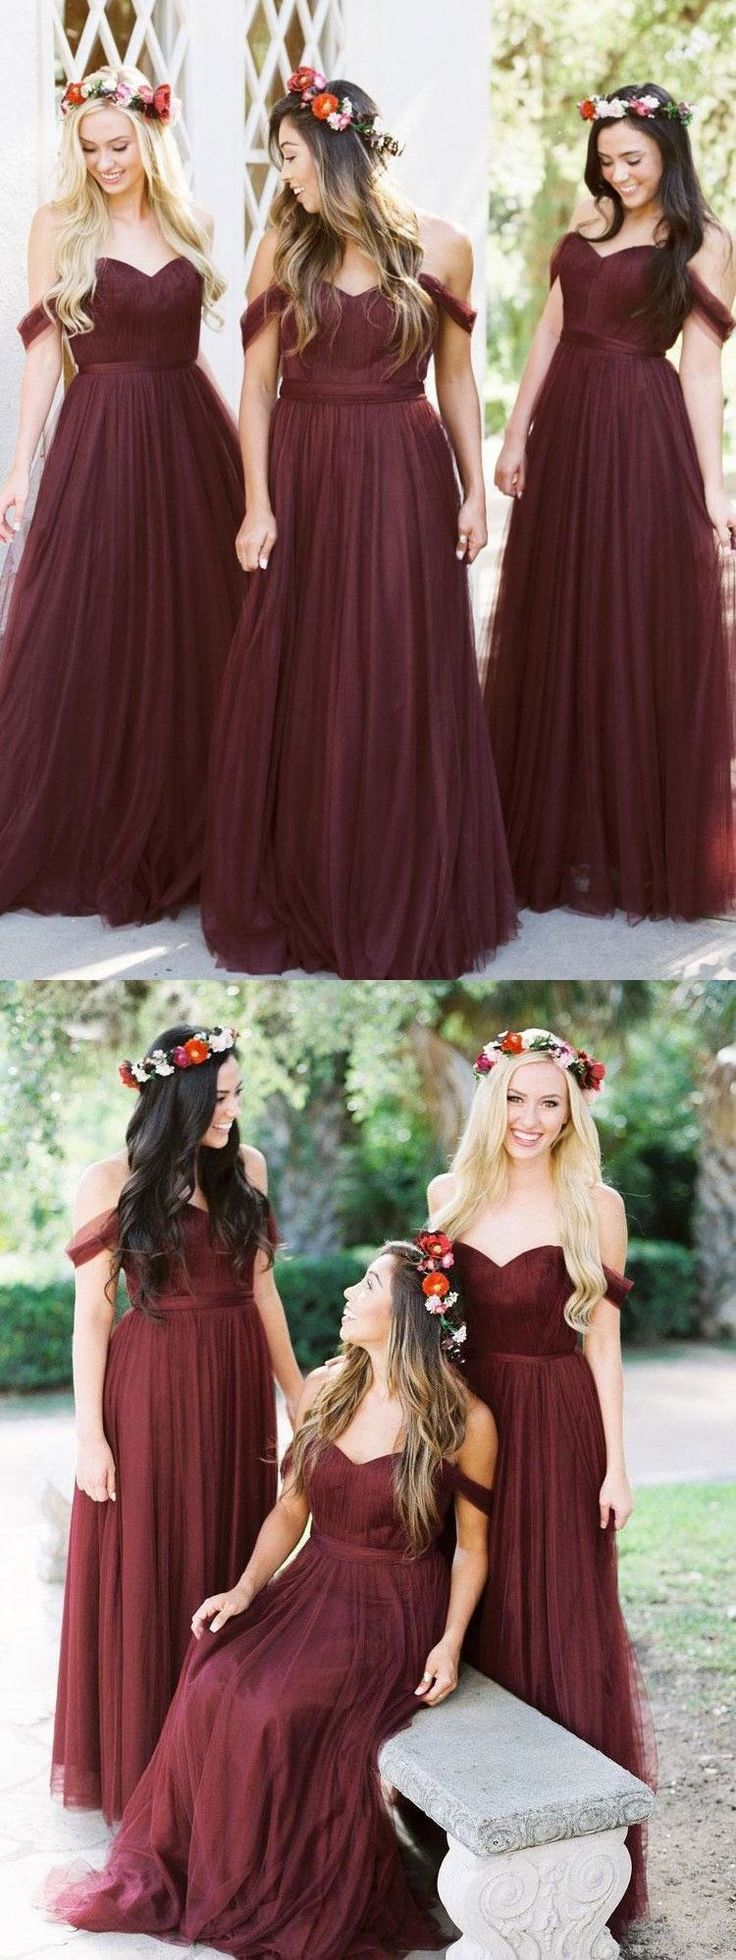 burgundy bridesmaid dresses,cheap bridesmaid dresses,off the shoulder bridesmaid dresses,bridesmaid dresses long,bridesmaid dresses 2018,bridesmaid dresses with sleeves,plus size bridesmaid dresses #bridesmaiddresses #bridesmaid #burgundy #tulleskirt